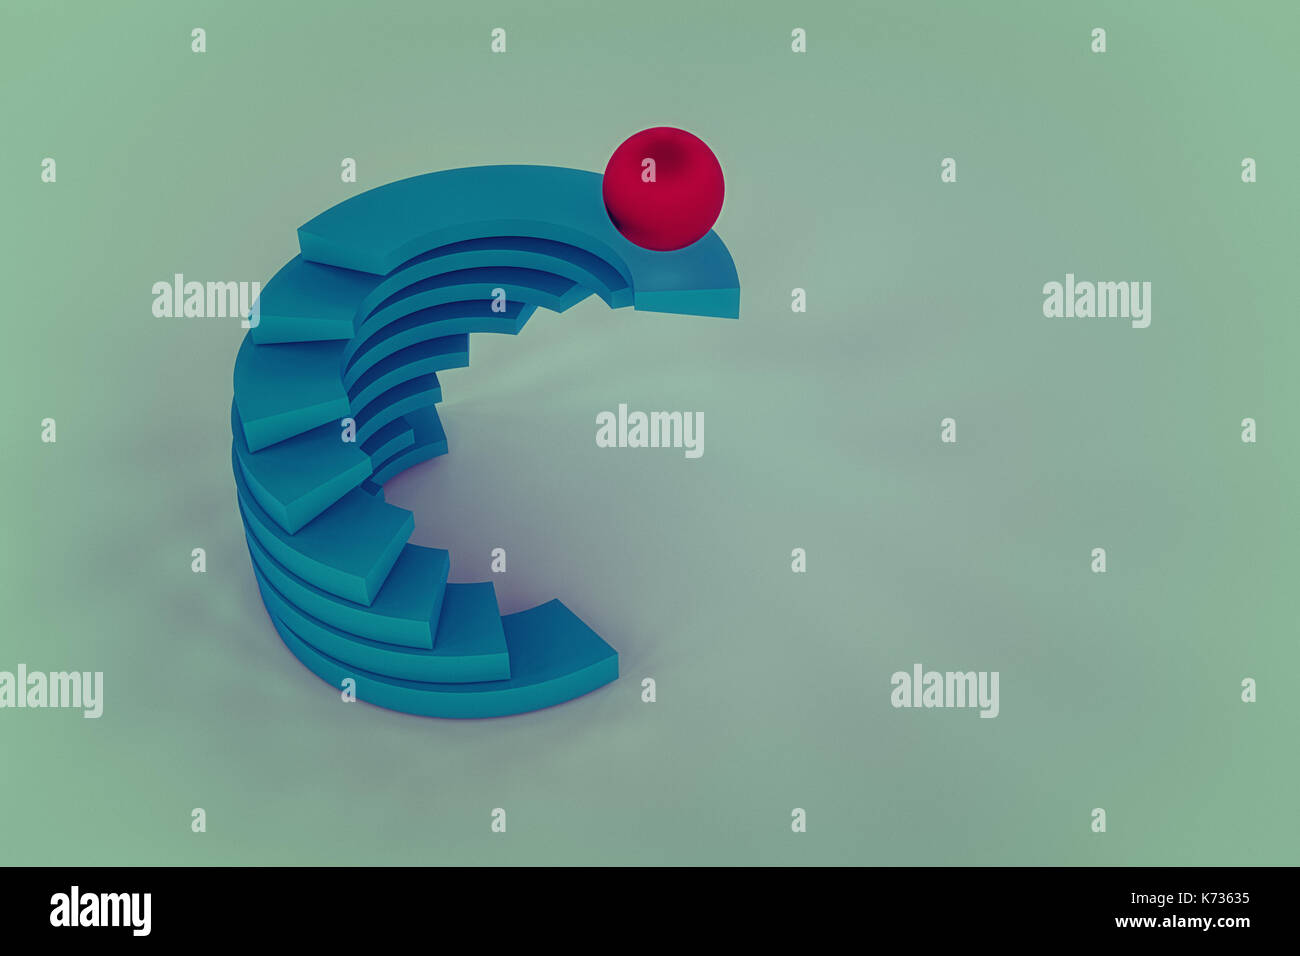 Pie chart money stock photos pie chart money stock images alamy 3d rendering of abstract stacking pie chart stock image nvjuhfo Images